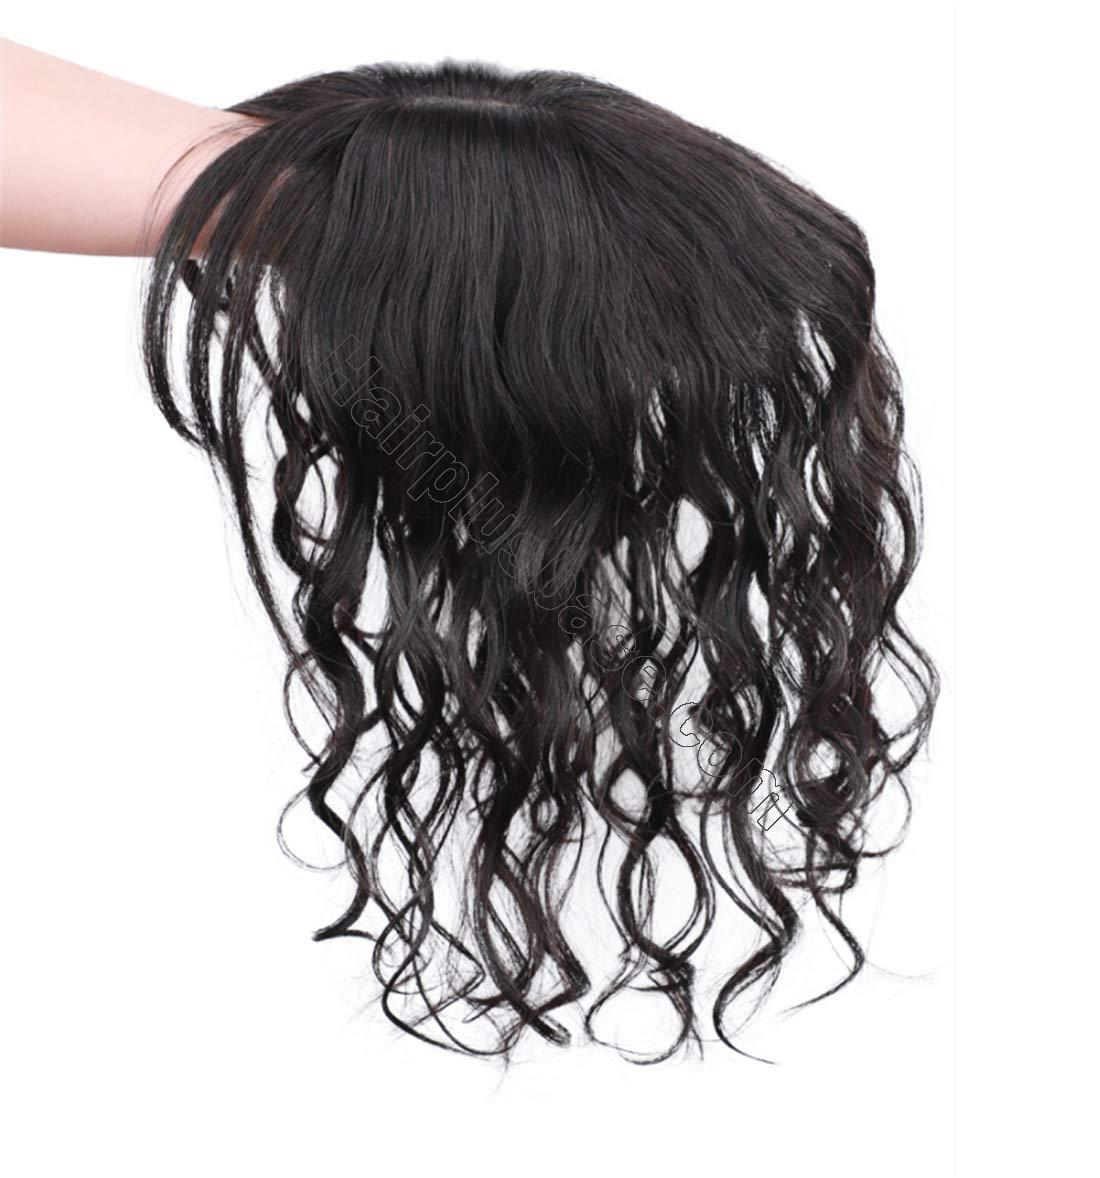 Real Human Hair Crown Hair Pieces Curly Hair Topper with Bangs for Women with Thinning Hair 3